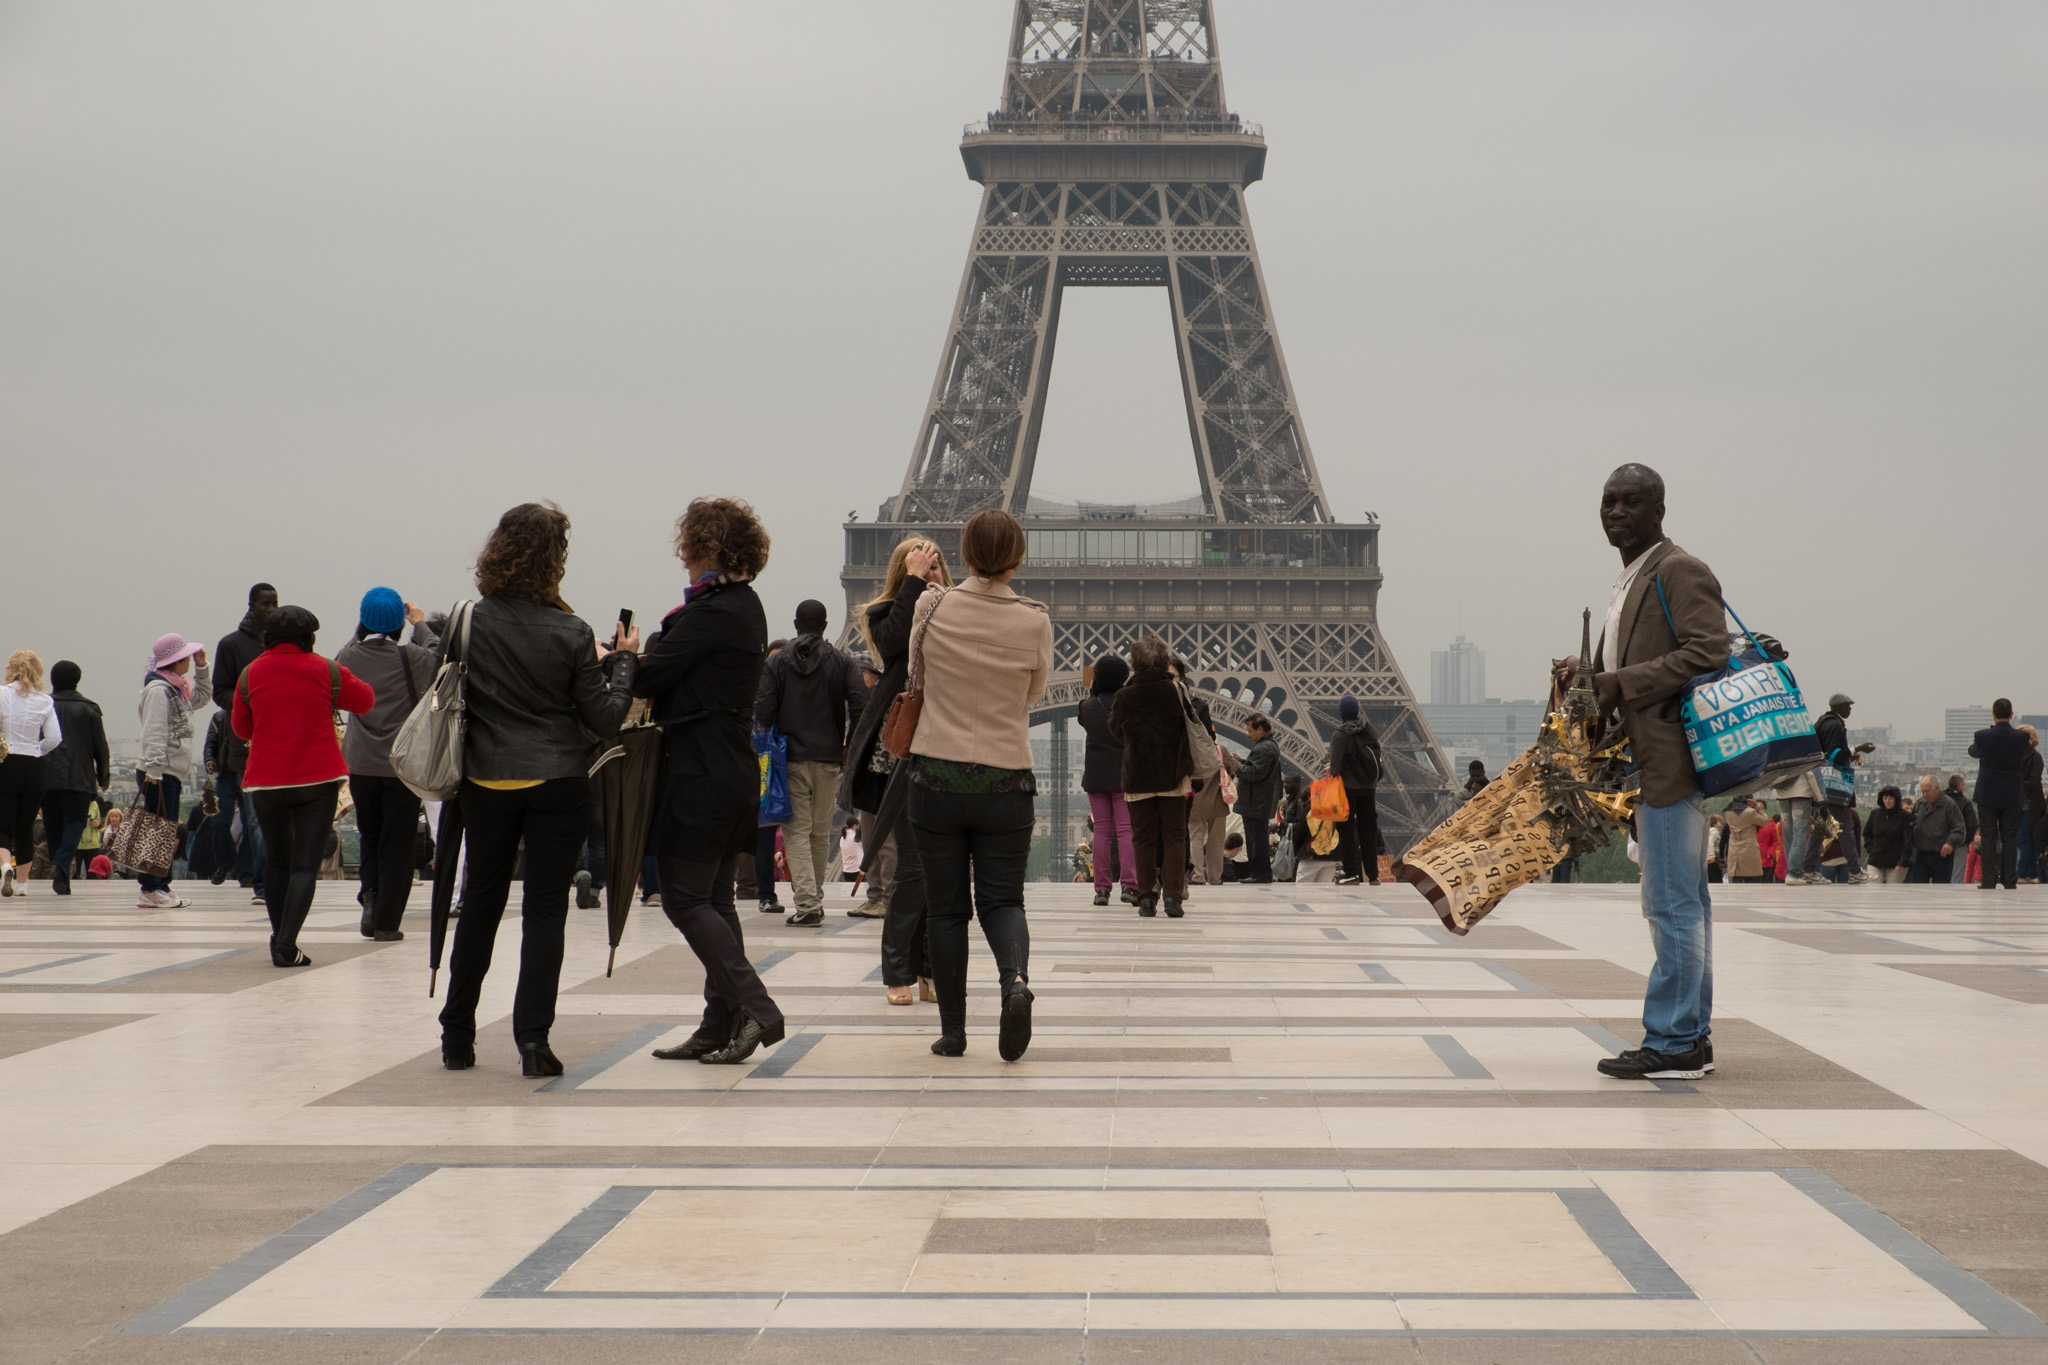 Tourism accounts for 8 percent of global CO2 emissions